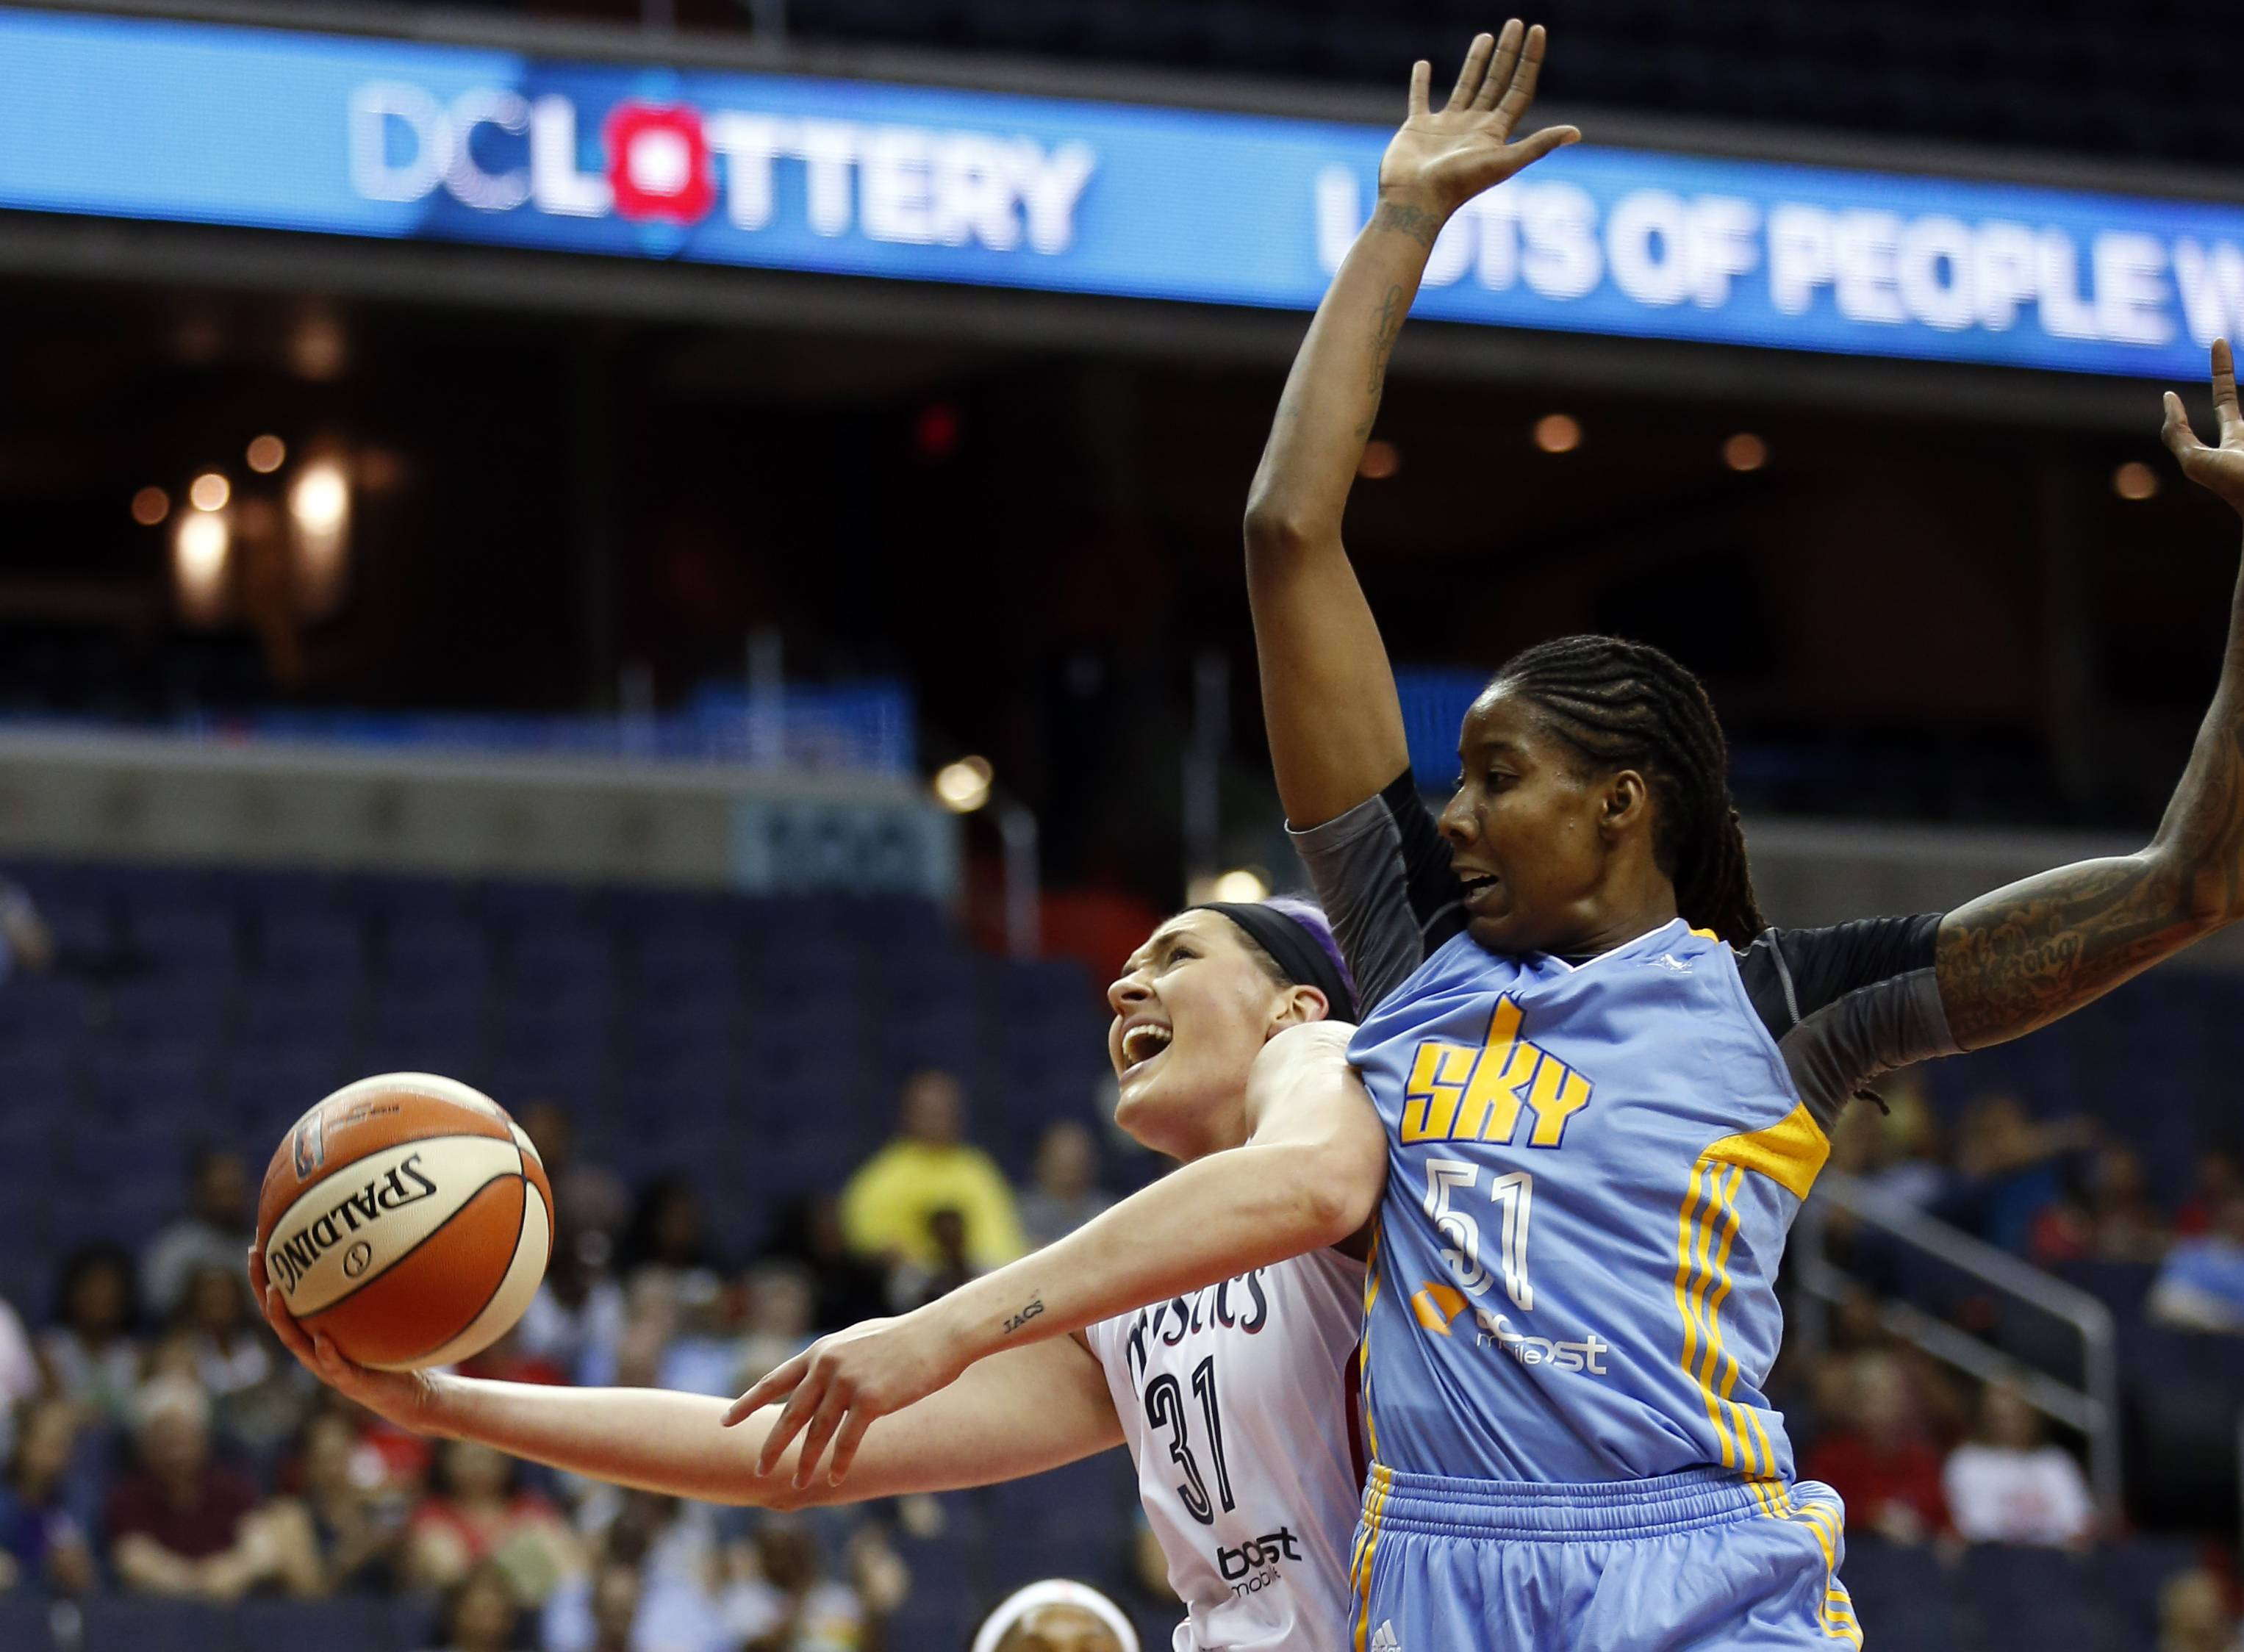 Chicago Sky forward Jessica Breland is a WNBA player who understands the league's relationship with the media.